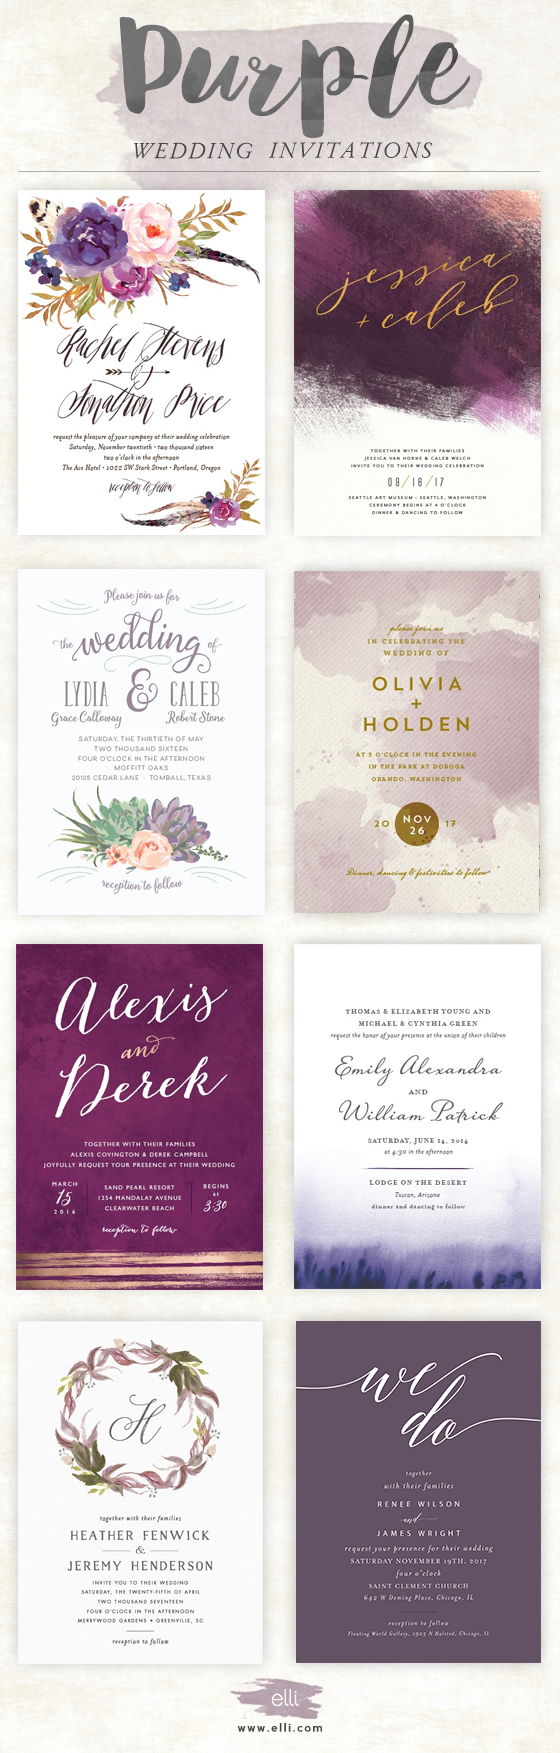 how to make invitation letter for vispurpose%0A Unique Modern Wedding Invitations in a variety of styles  Find your perfect  modern wedding invite and customize for free at Elli com   Pinterest    Unique